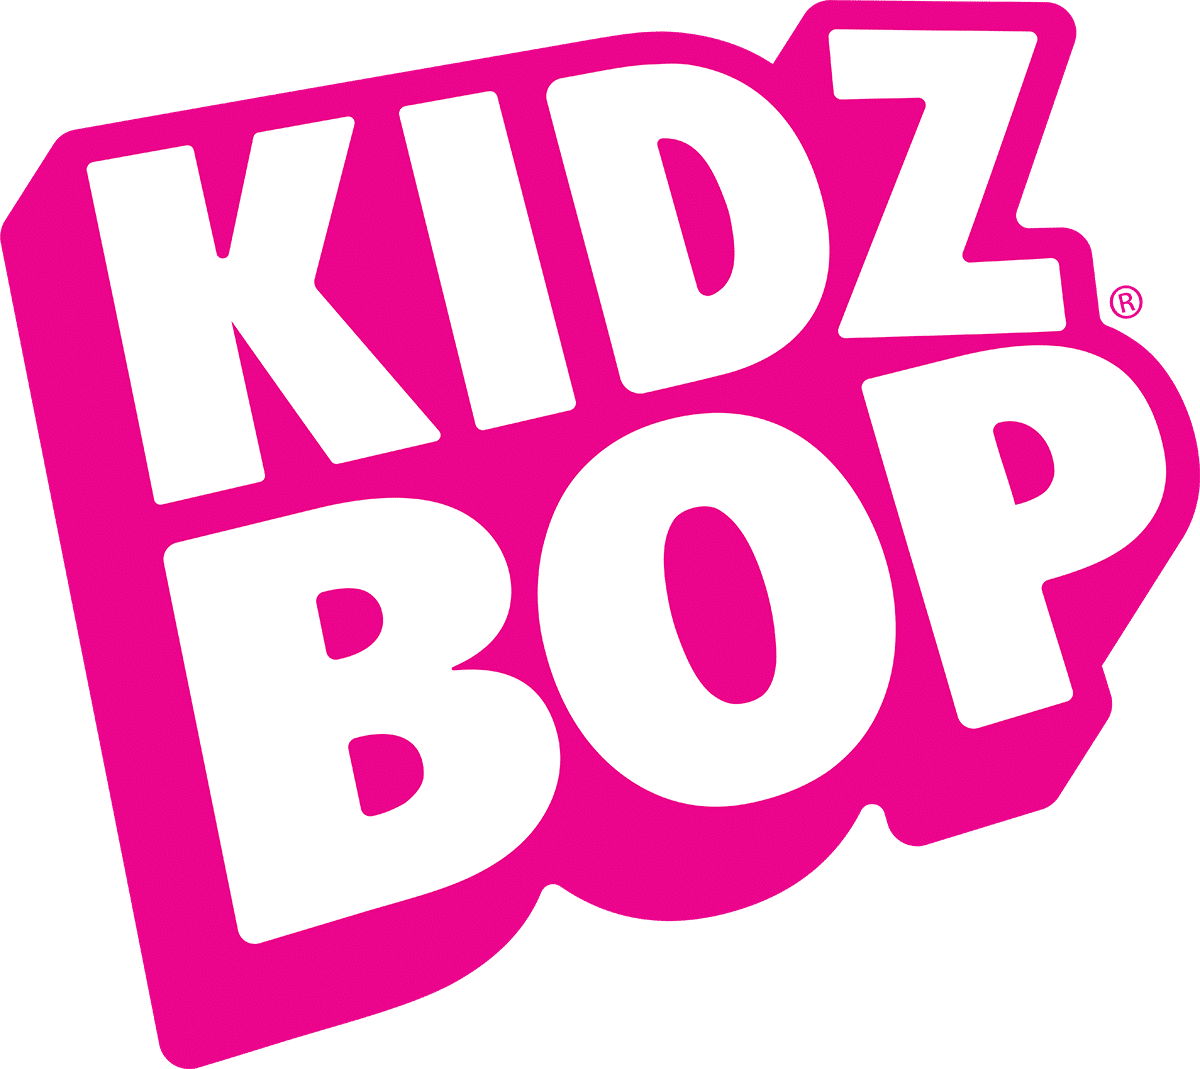 Kidz bop clipart svg black and white KIDZ BOP | Concord svg black and white